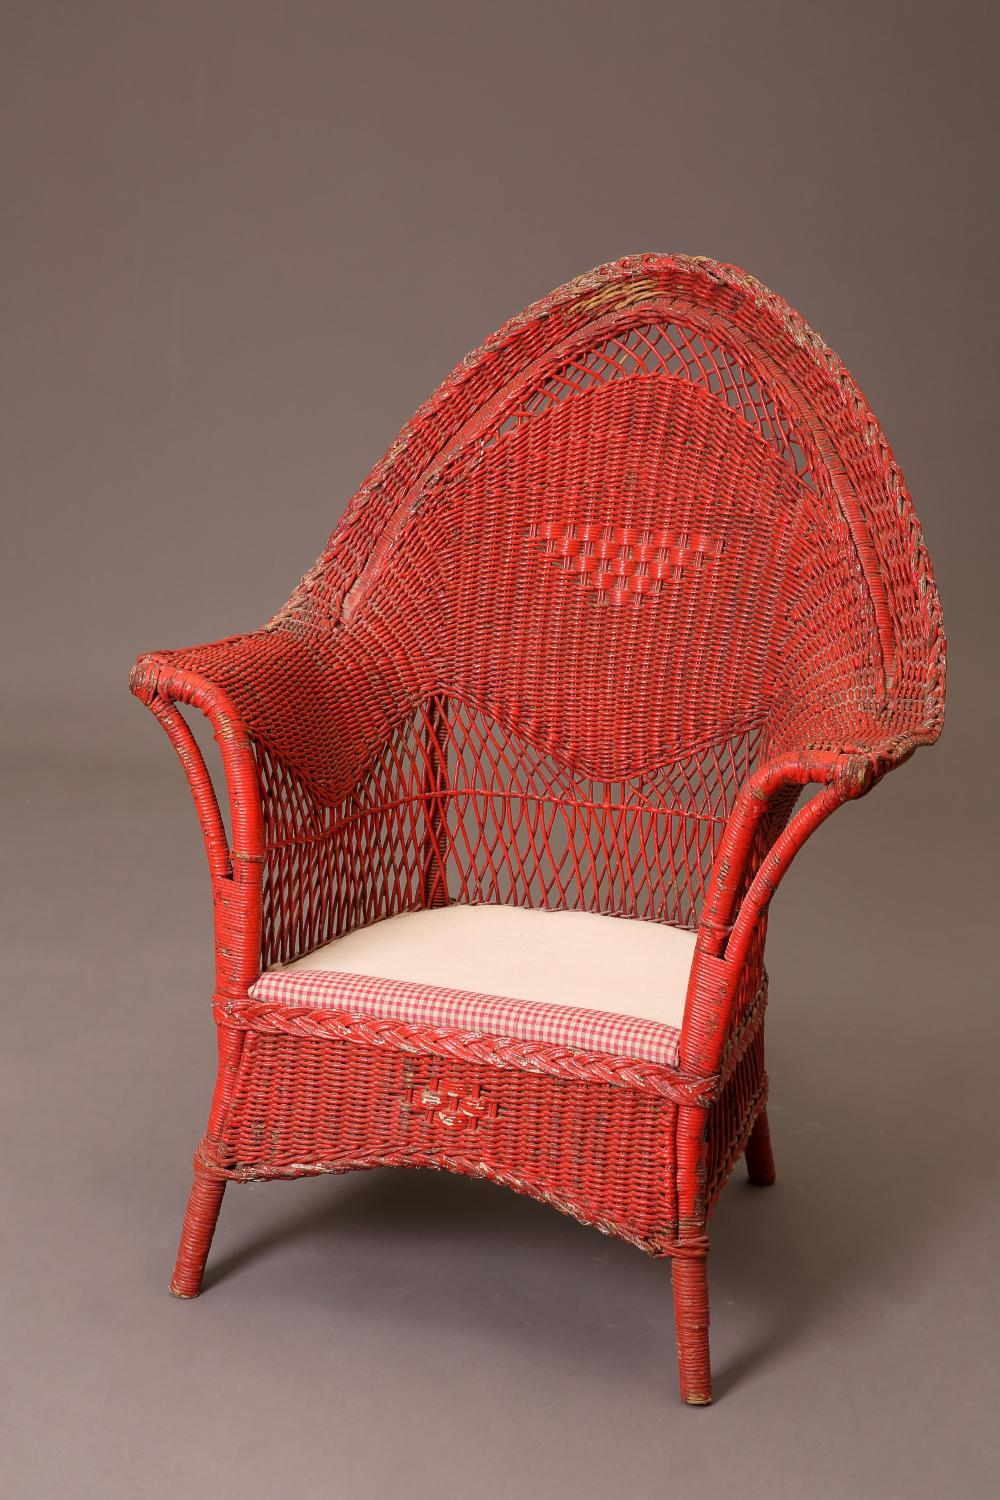 American, Red Wicker Sofa and Two Chairs, ca. 1930